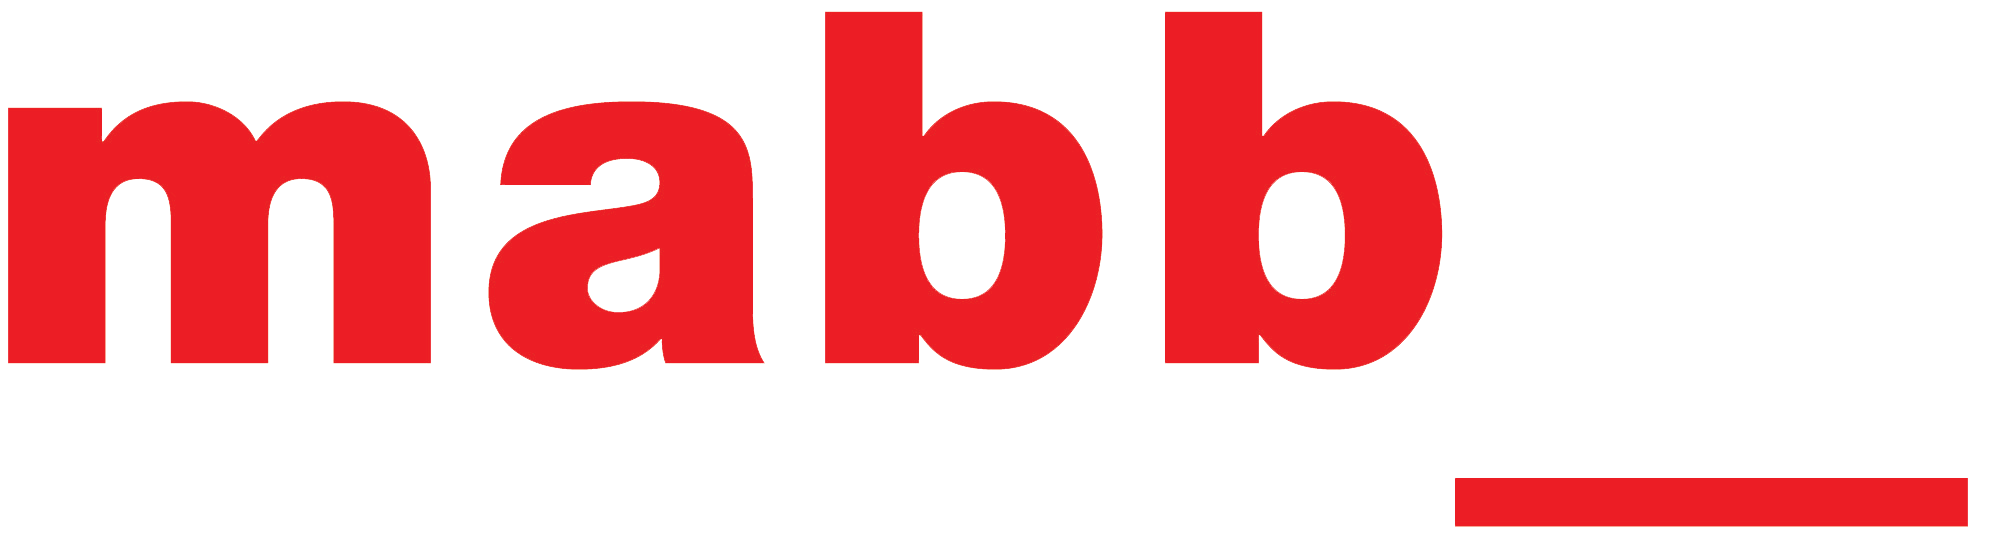 TV Hackday 2016 is hosted by mabb